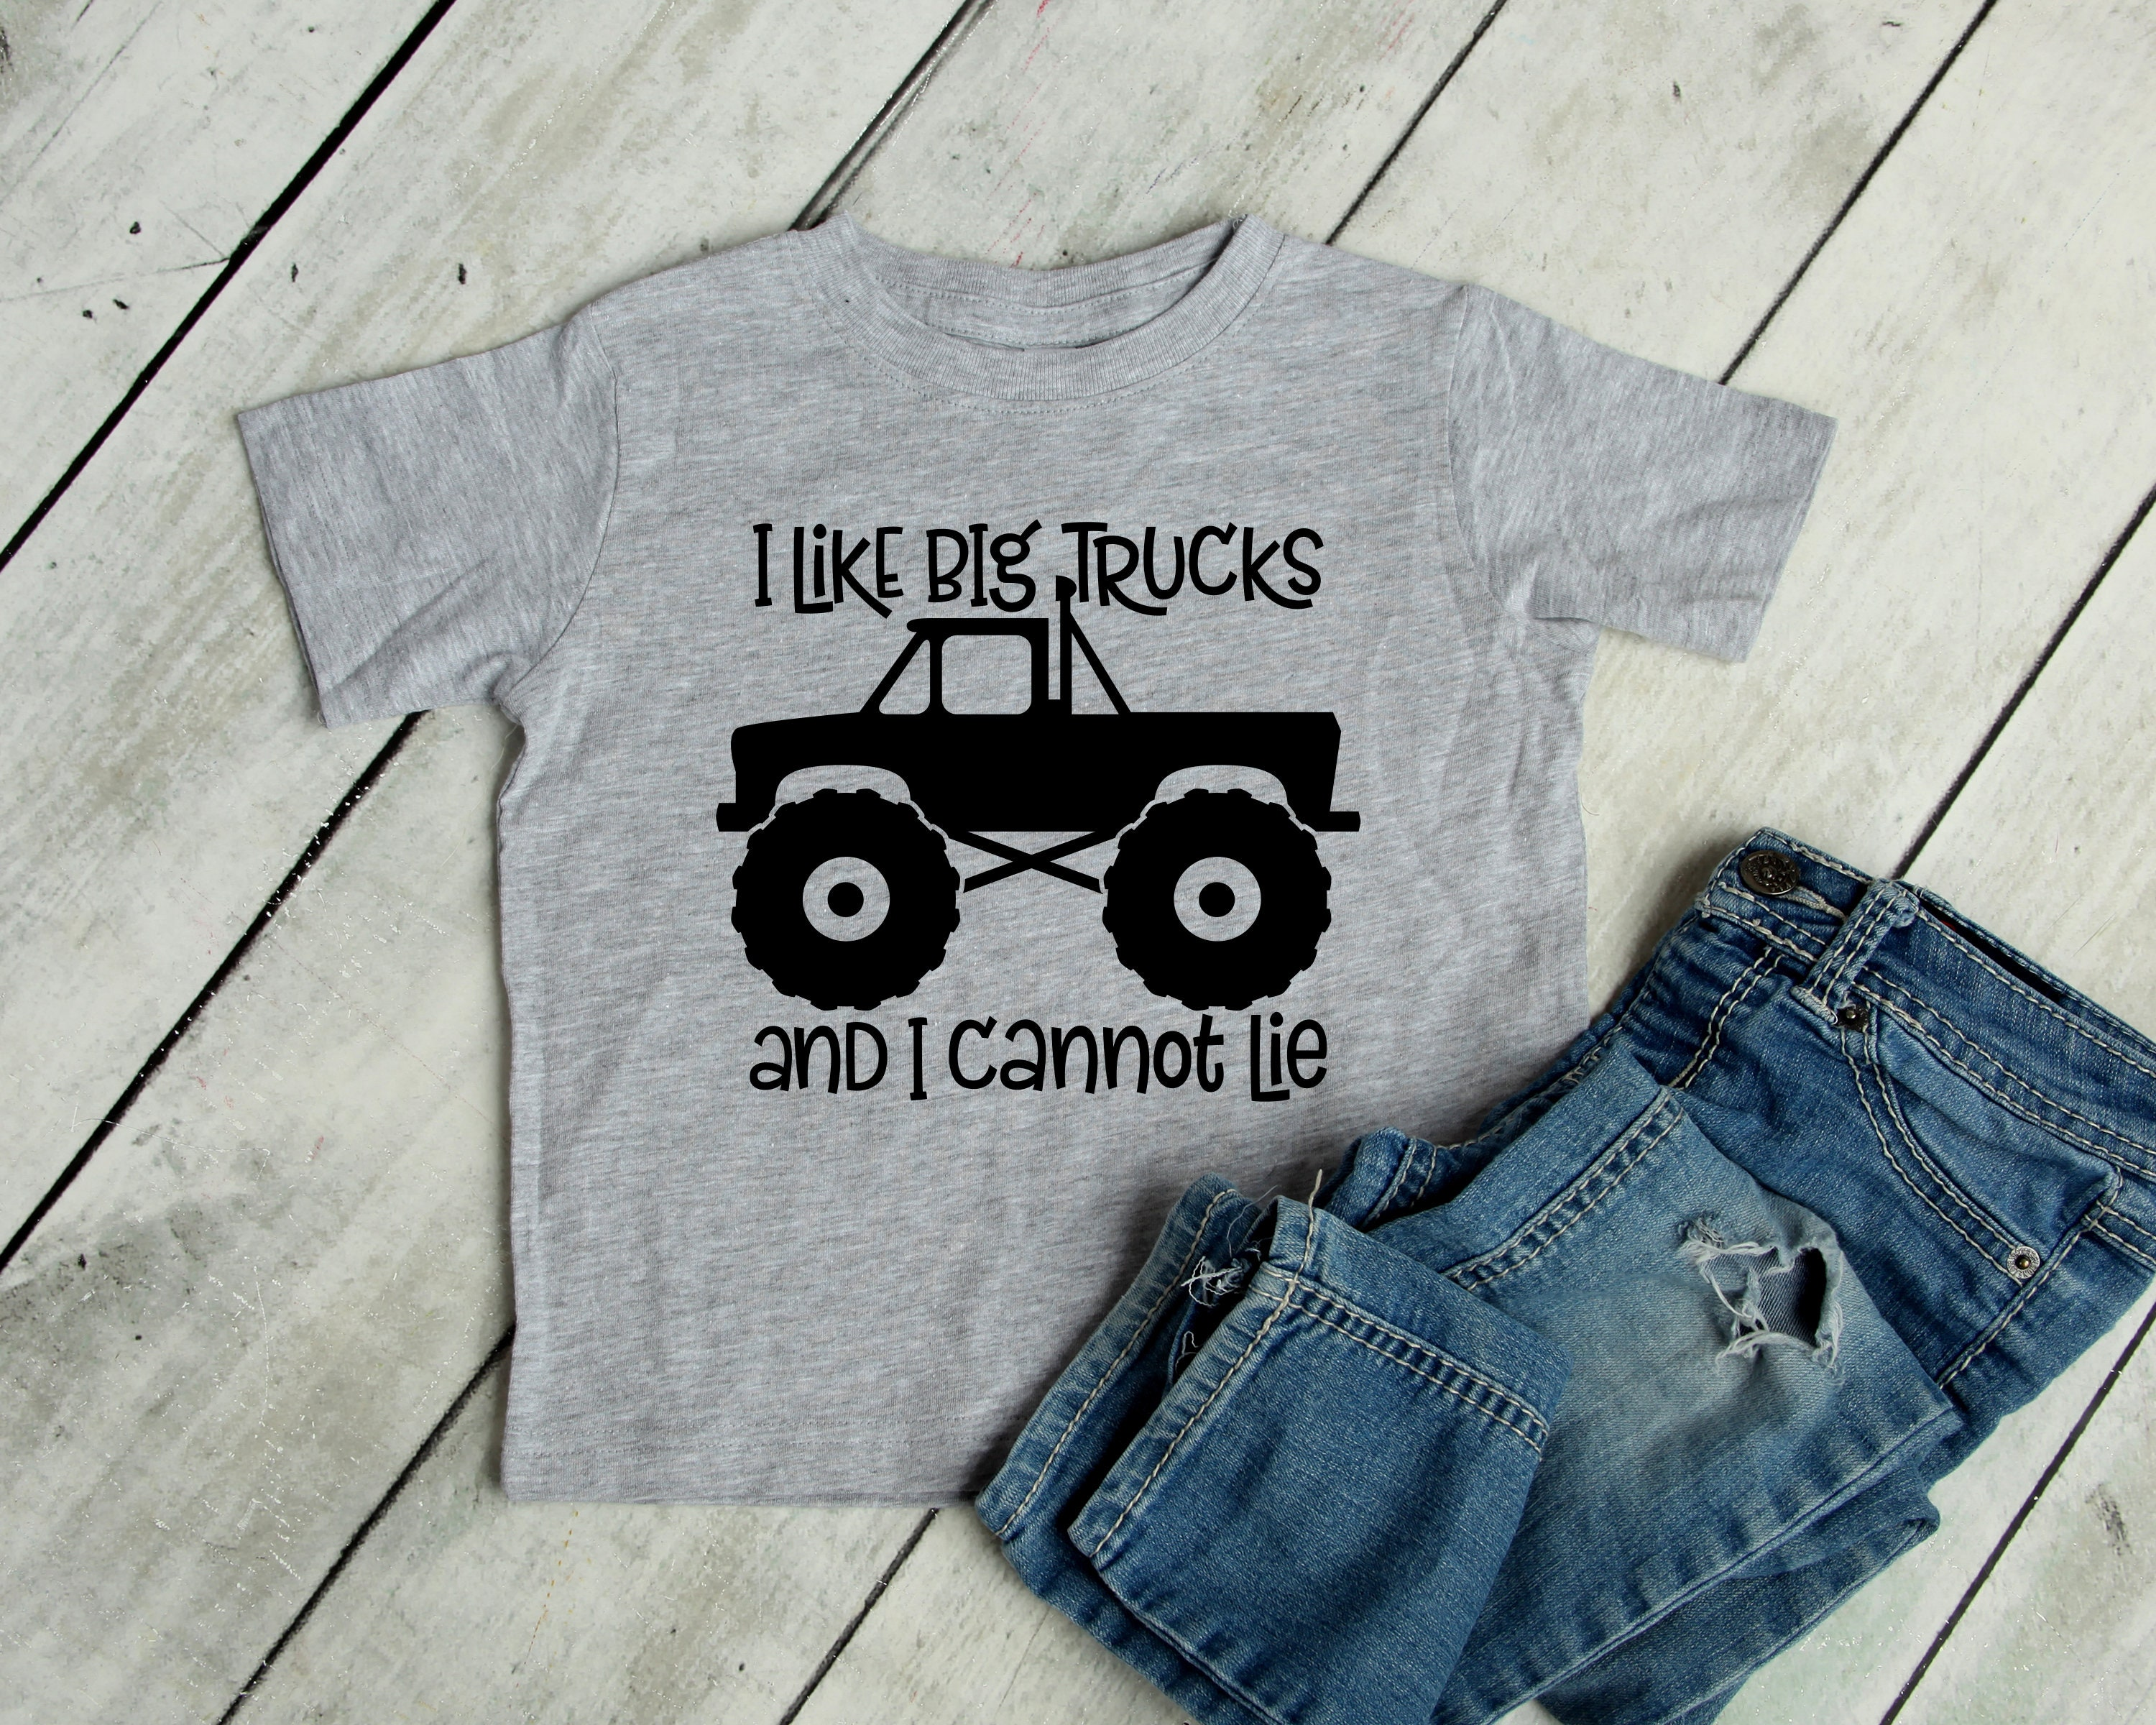 a3eef0b7 ... monster truck tshirt t shirt 3t opsecsecurity co; toddler boy truck i  like big trucks shirt boys truck etsy ...